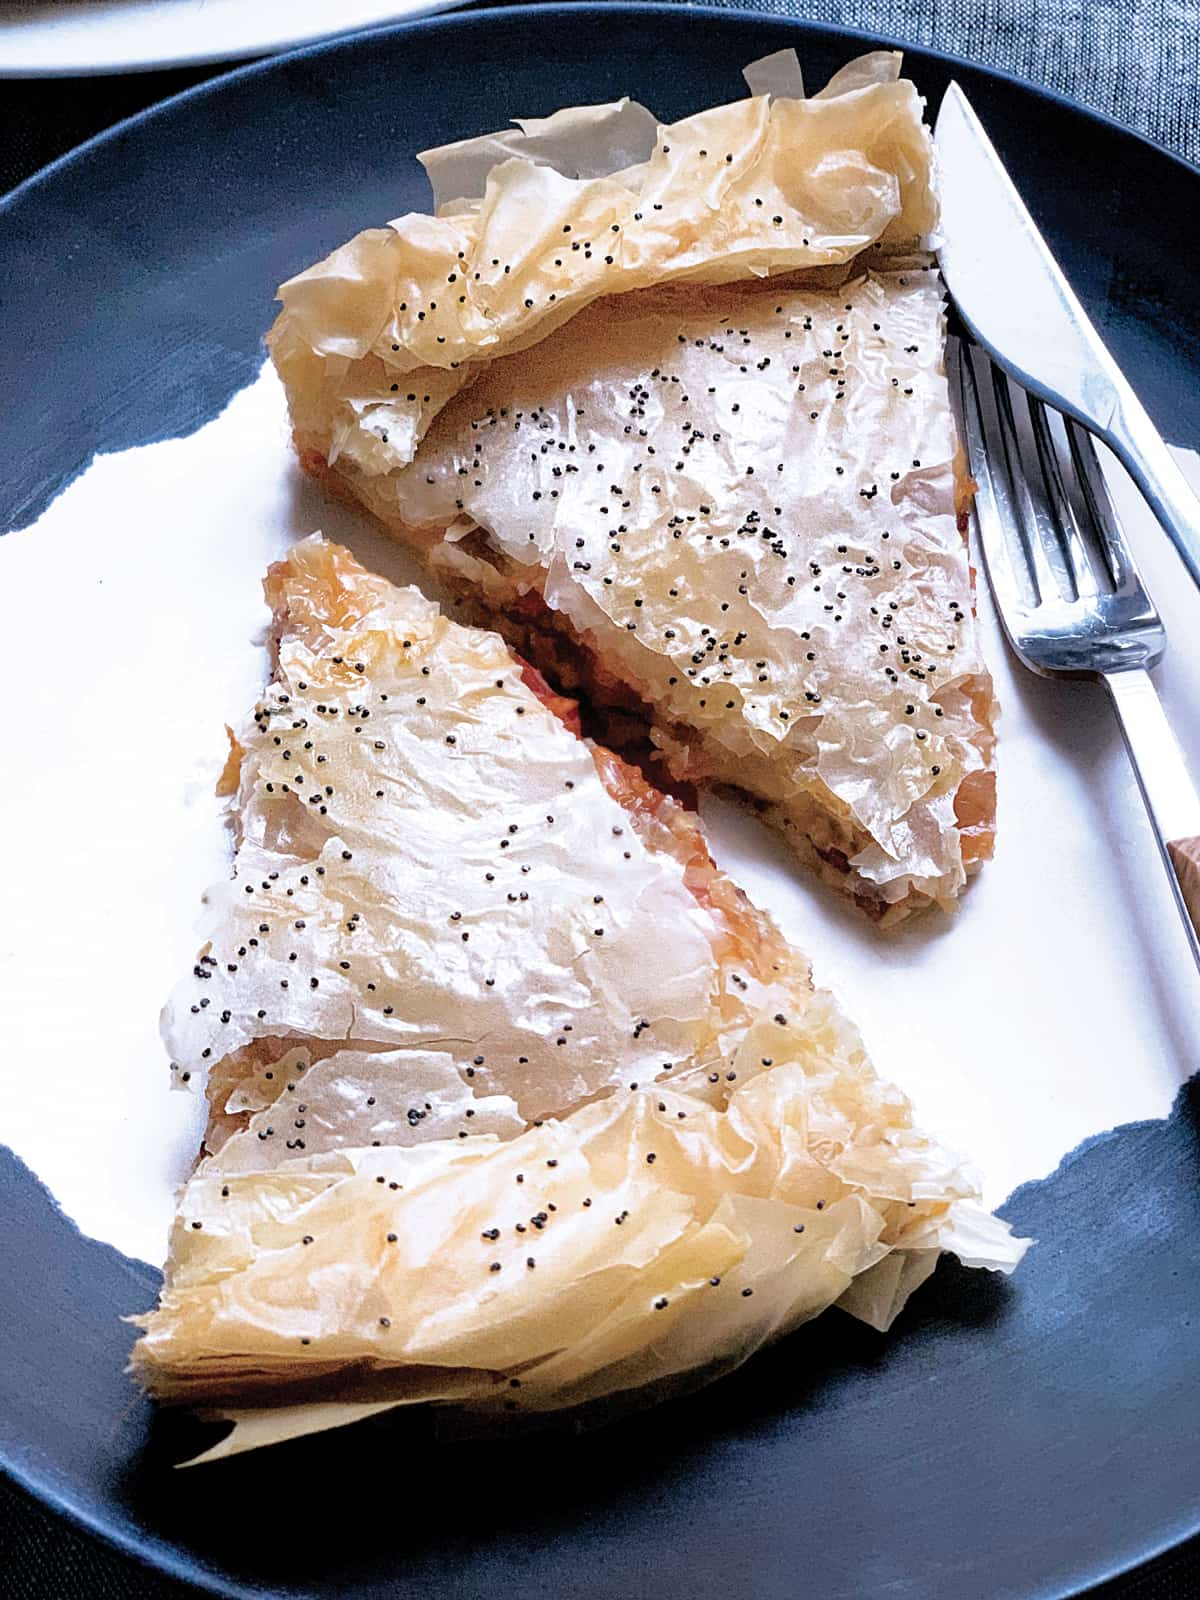 Two pieces of Pastourmadopita pie o a plate with a fork and knife.